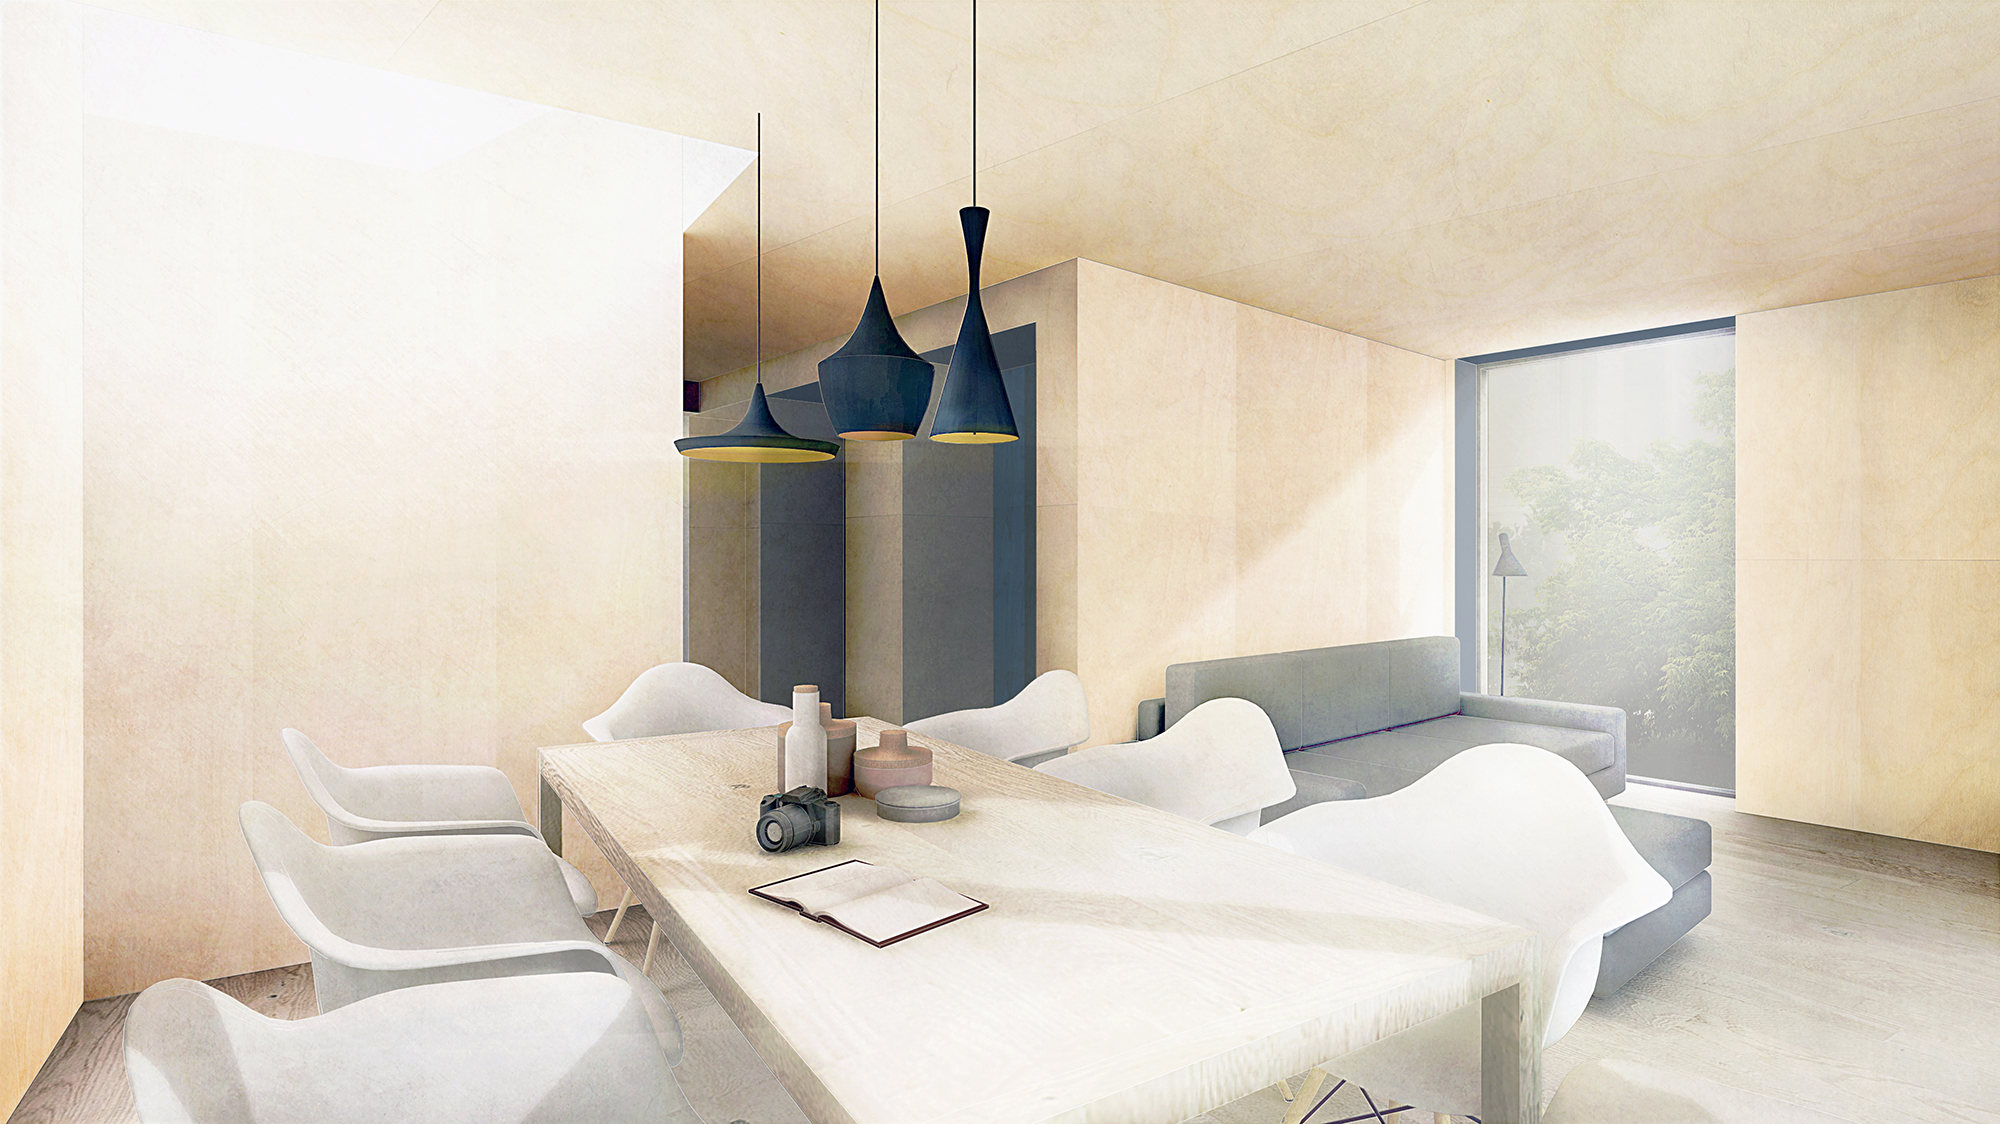 Concept of contemporary architecture extension interior, Twyford, Hampshire